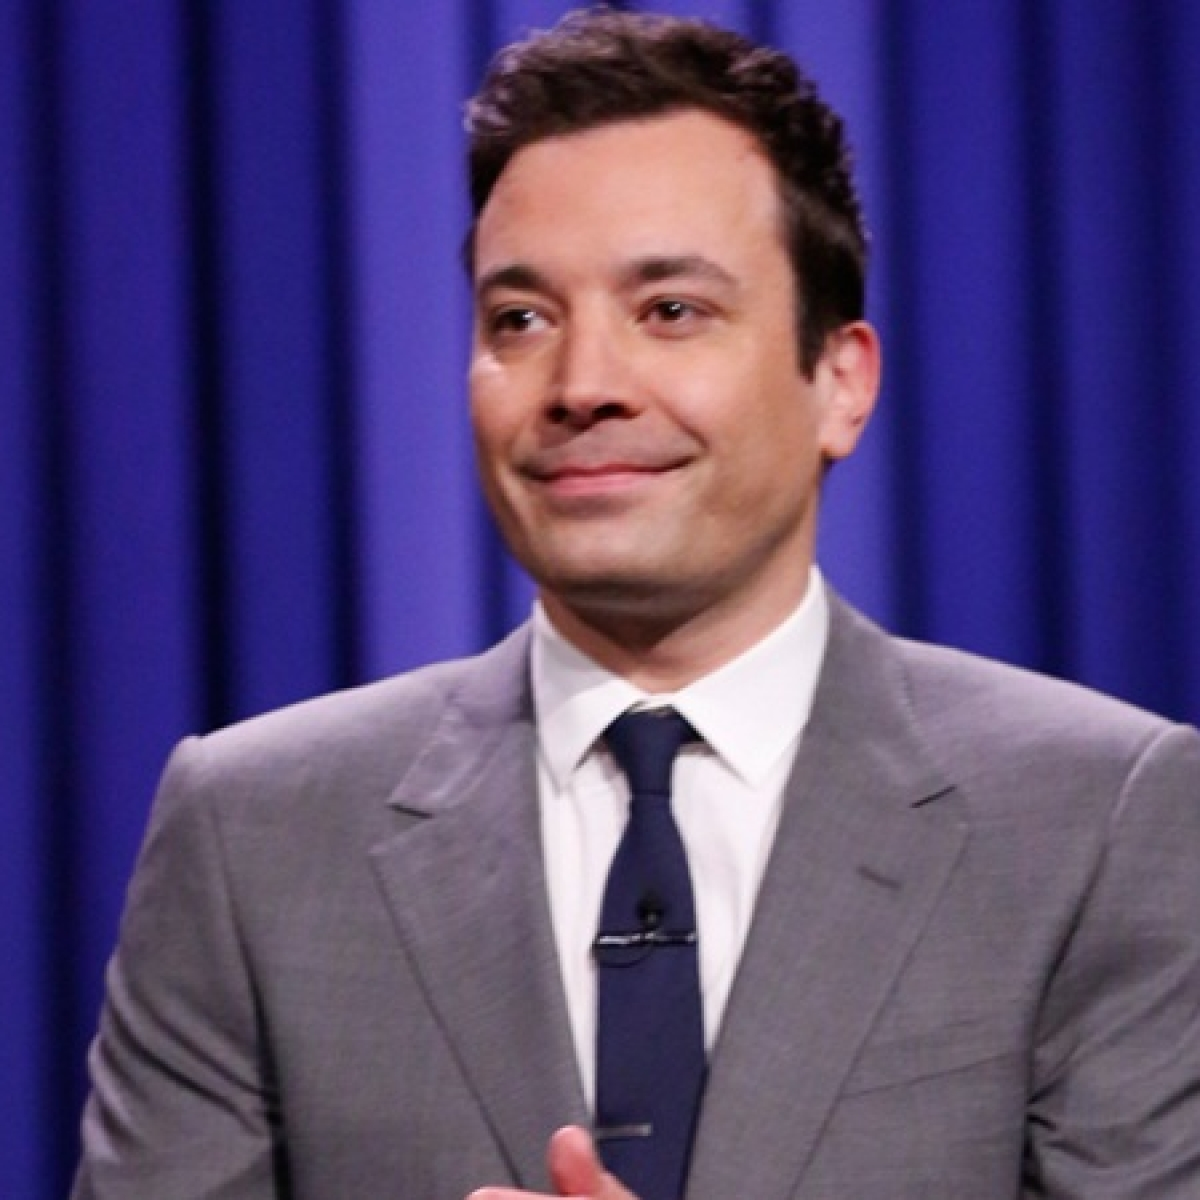 Jimmy Fallon apologises for wearing blackface in old 'SNL' skit after viral backlash